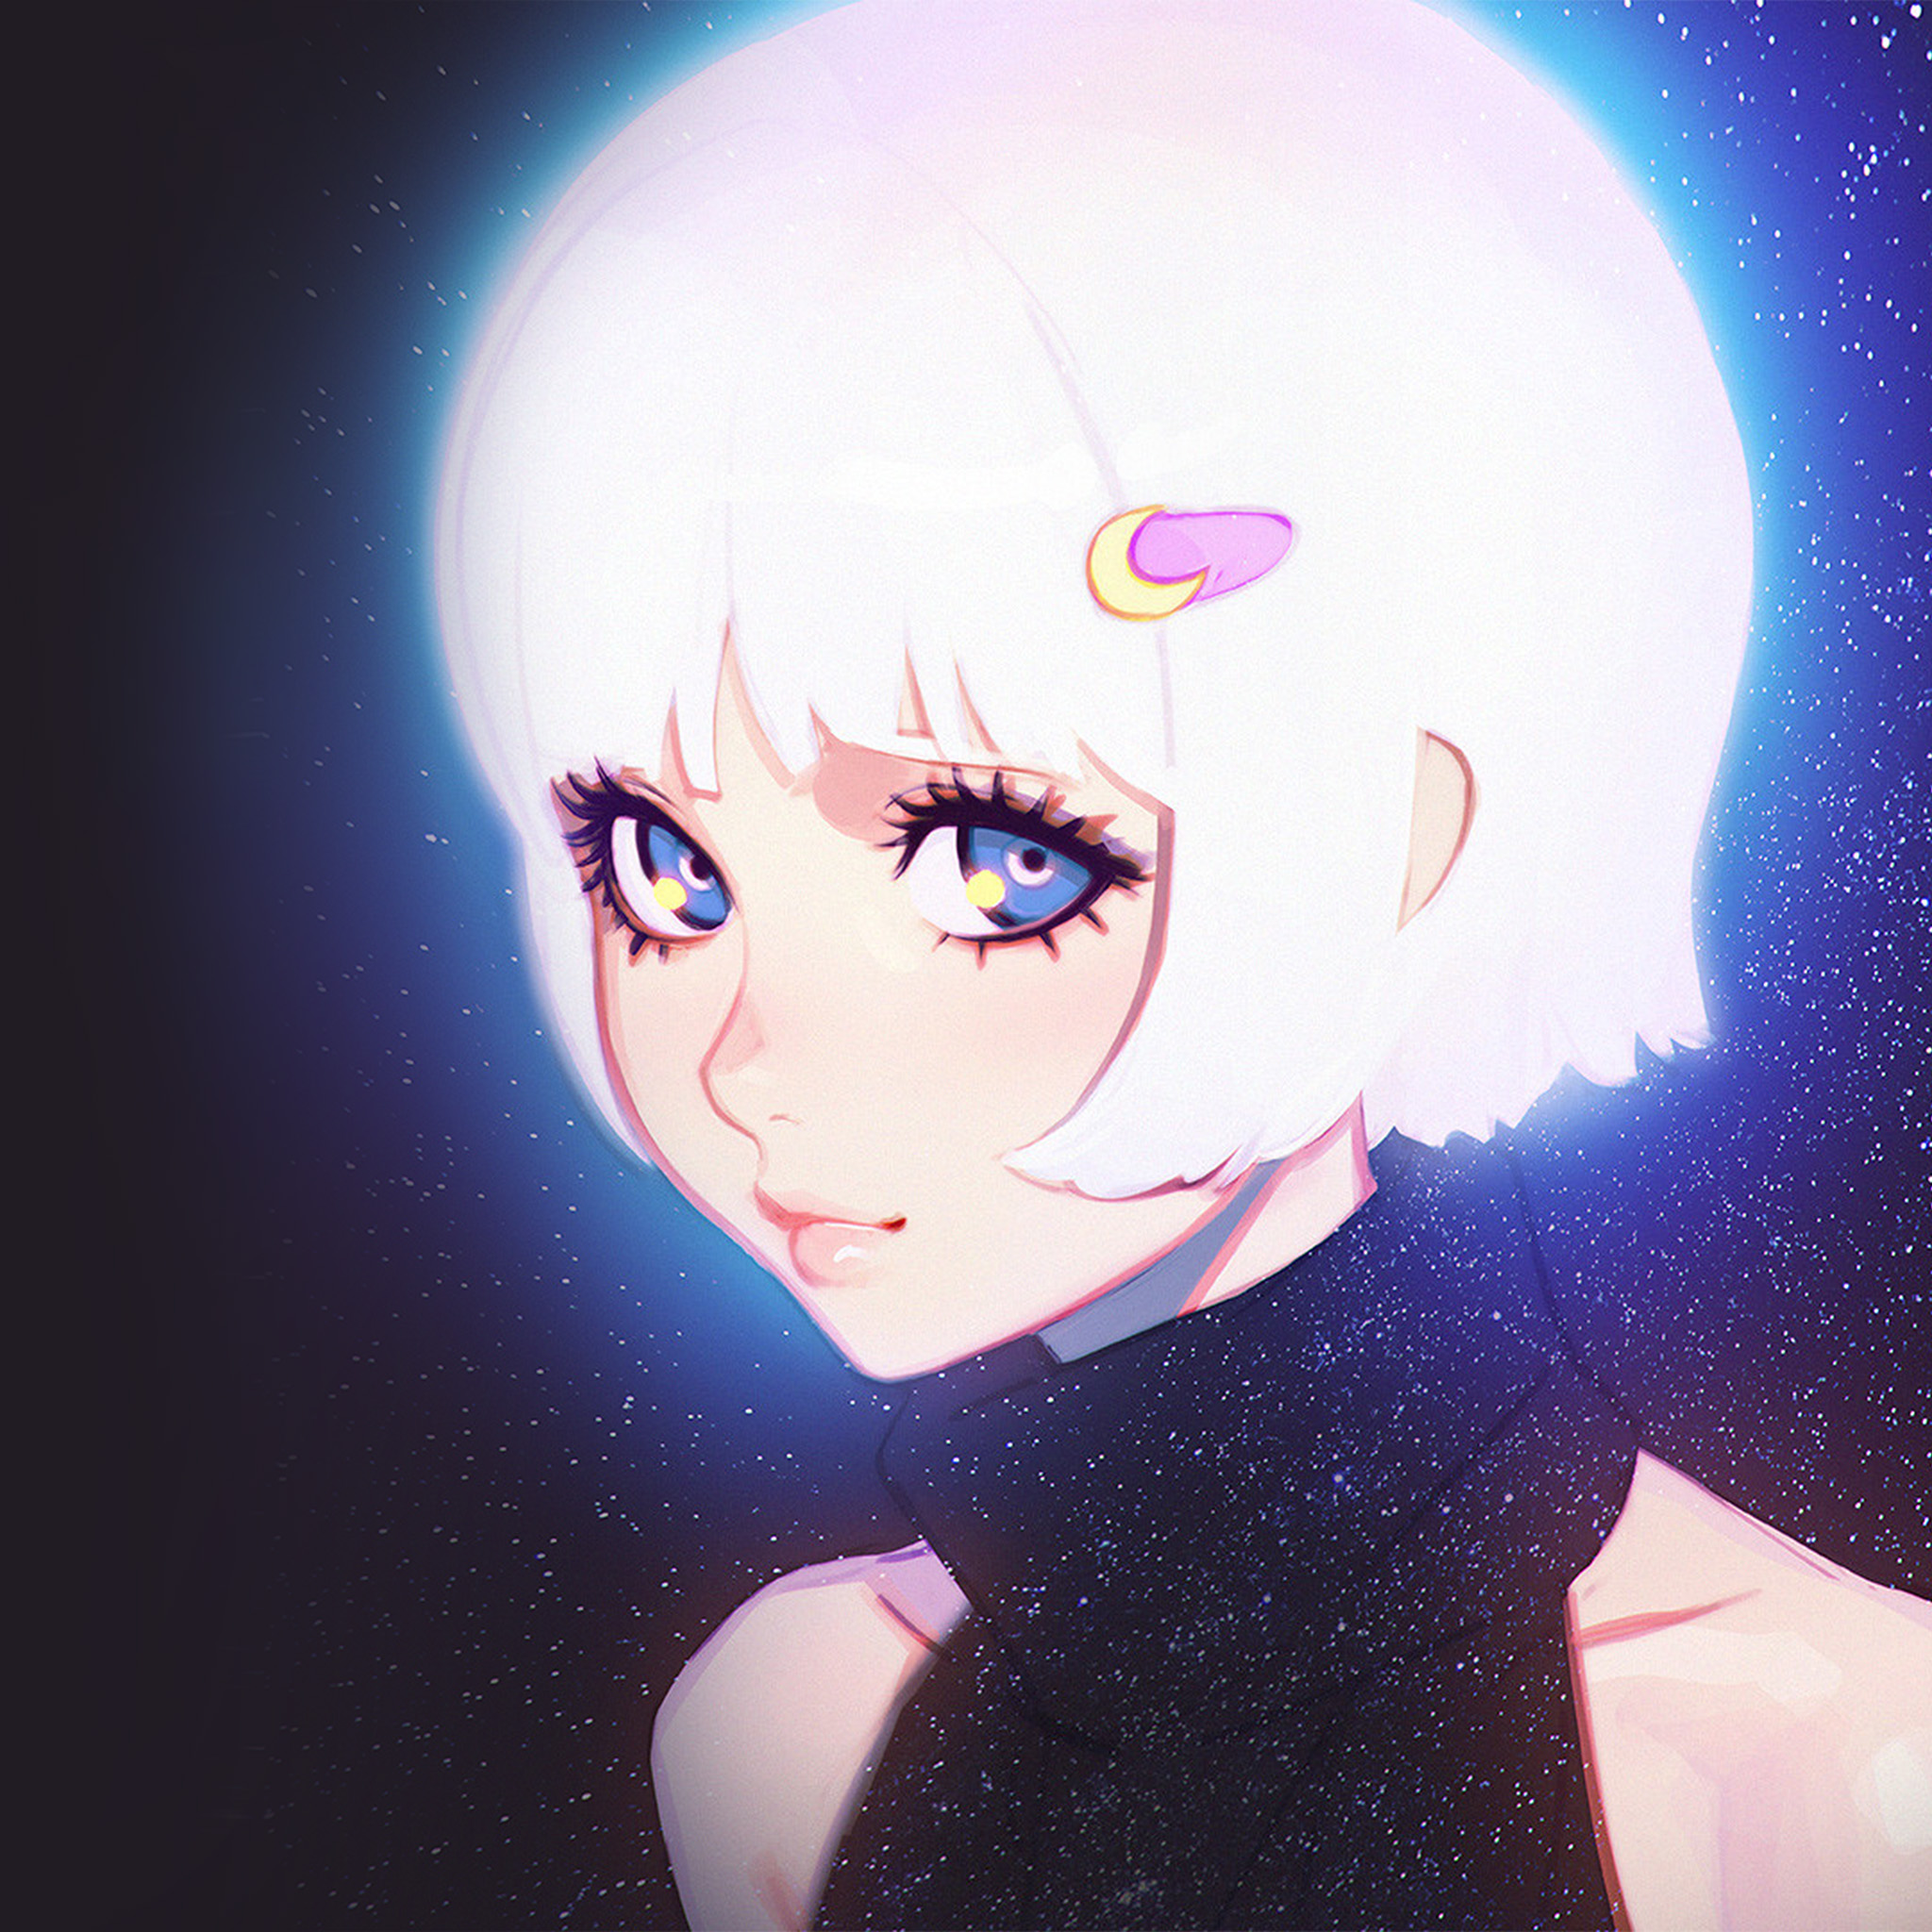 Ax54-ilya-kuvshinov-illustration-art-girl-dark-white-hair